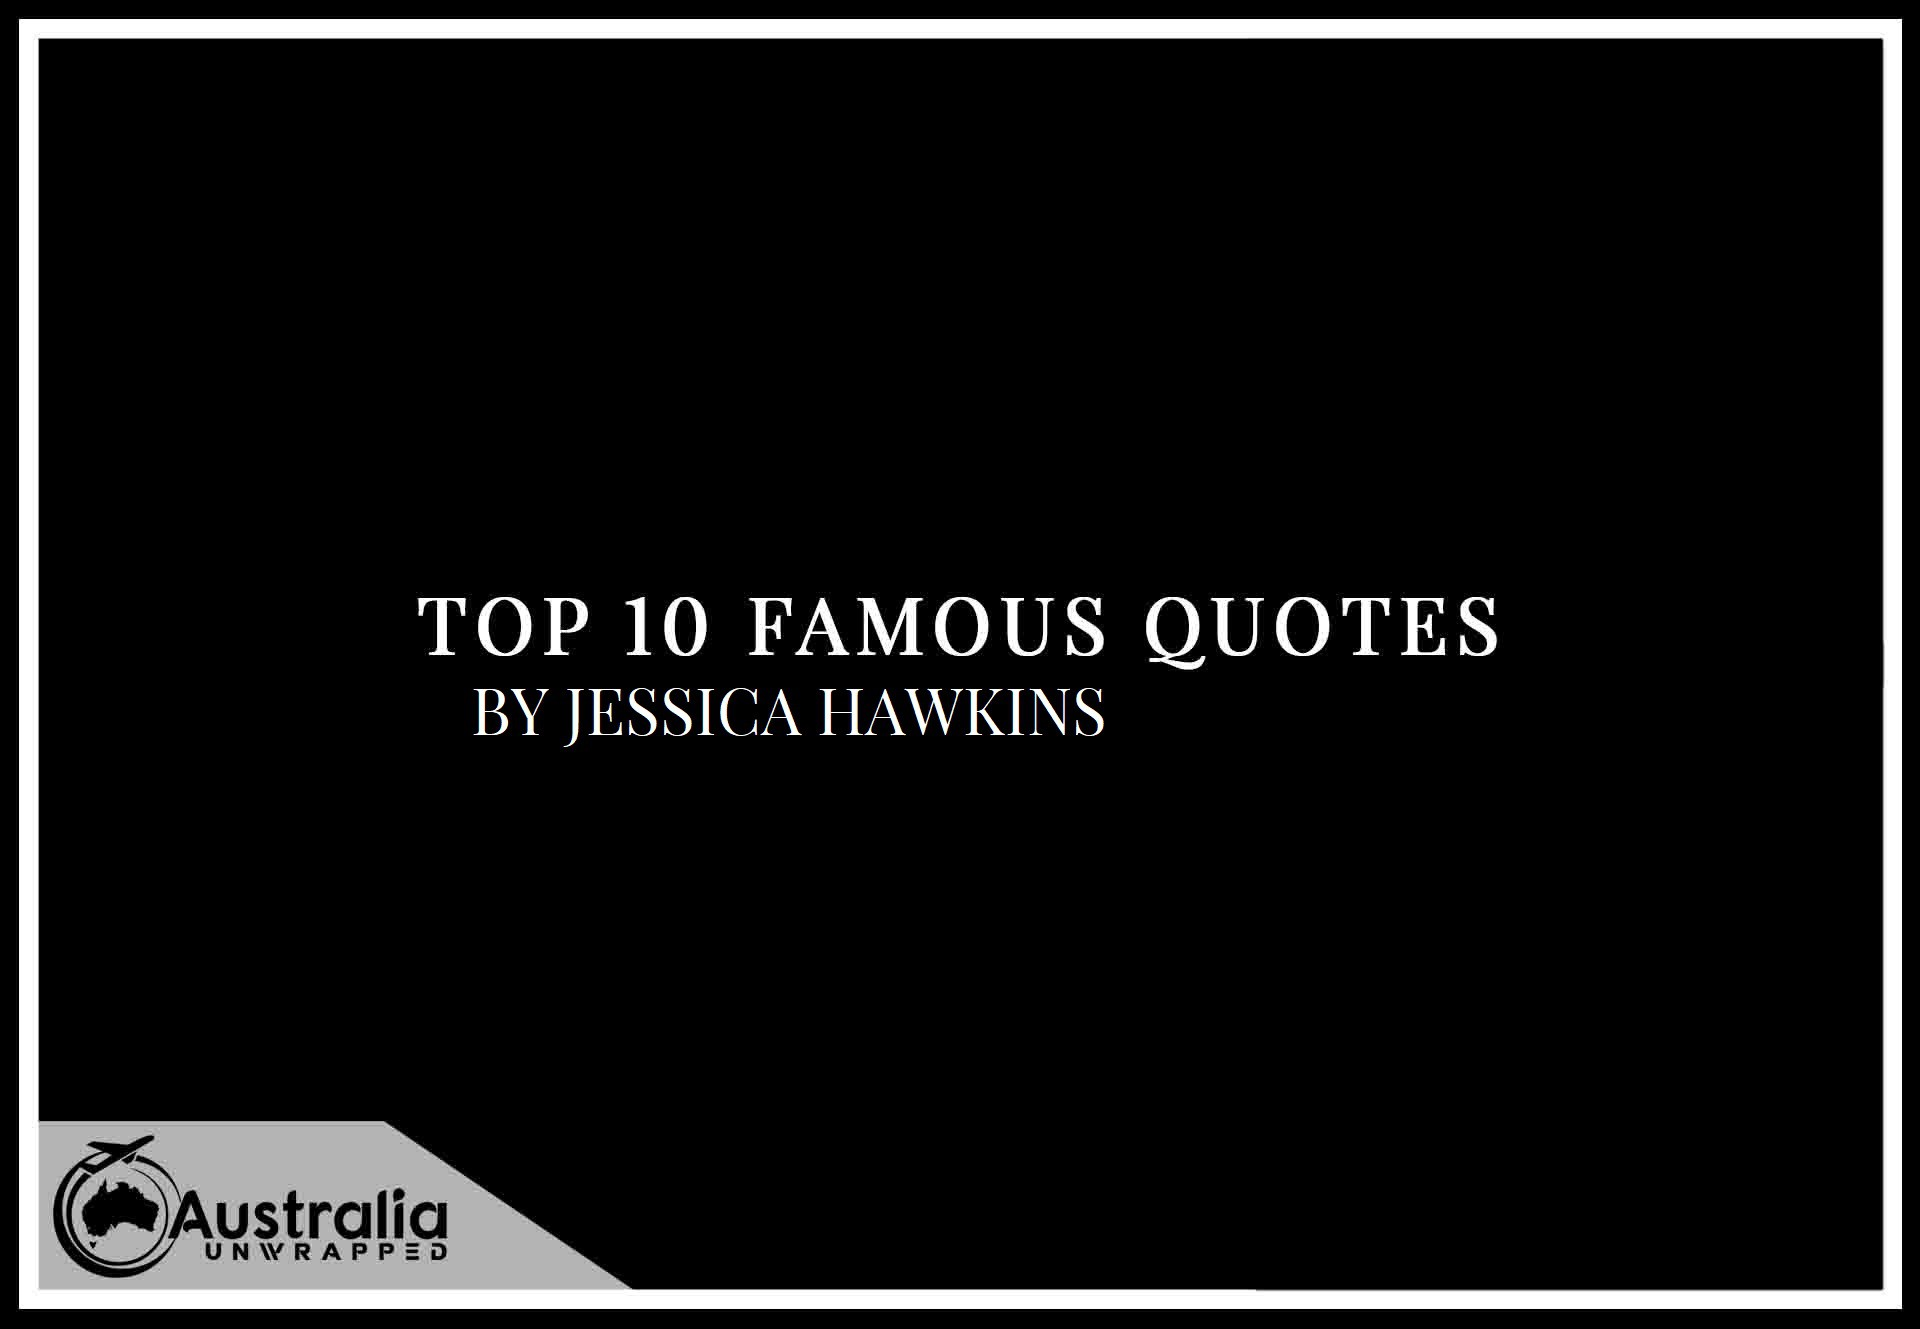 Top 10 Famous Quotes by Author Jessica Hawkins